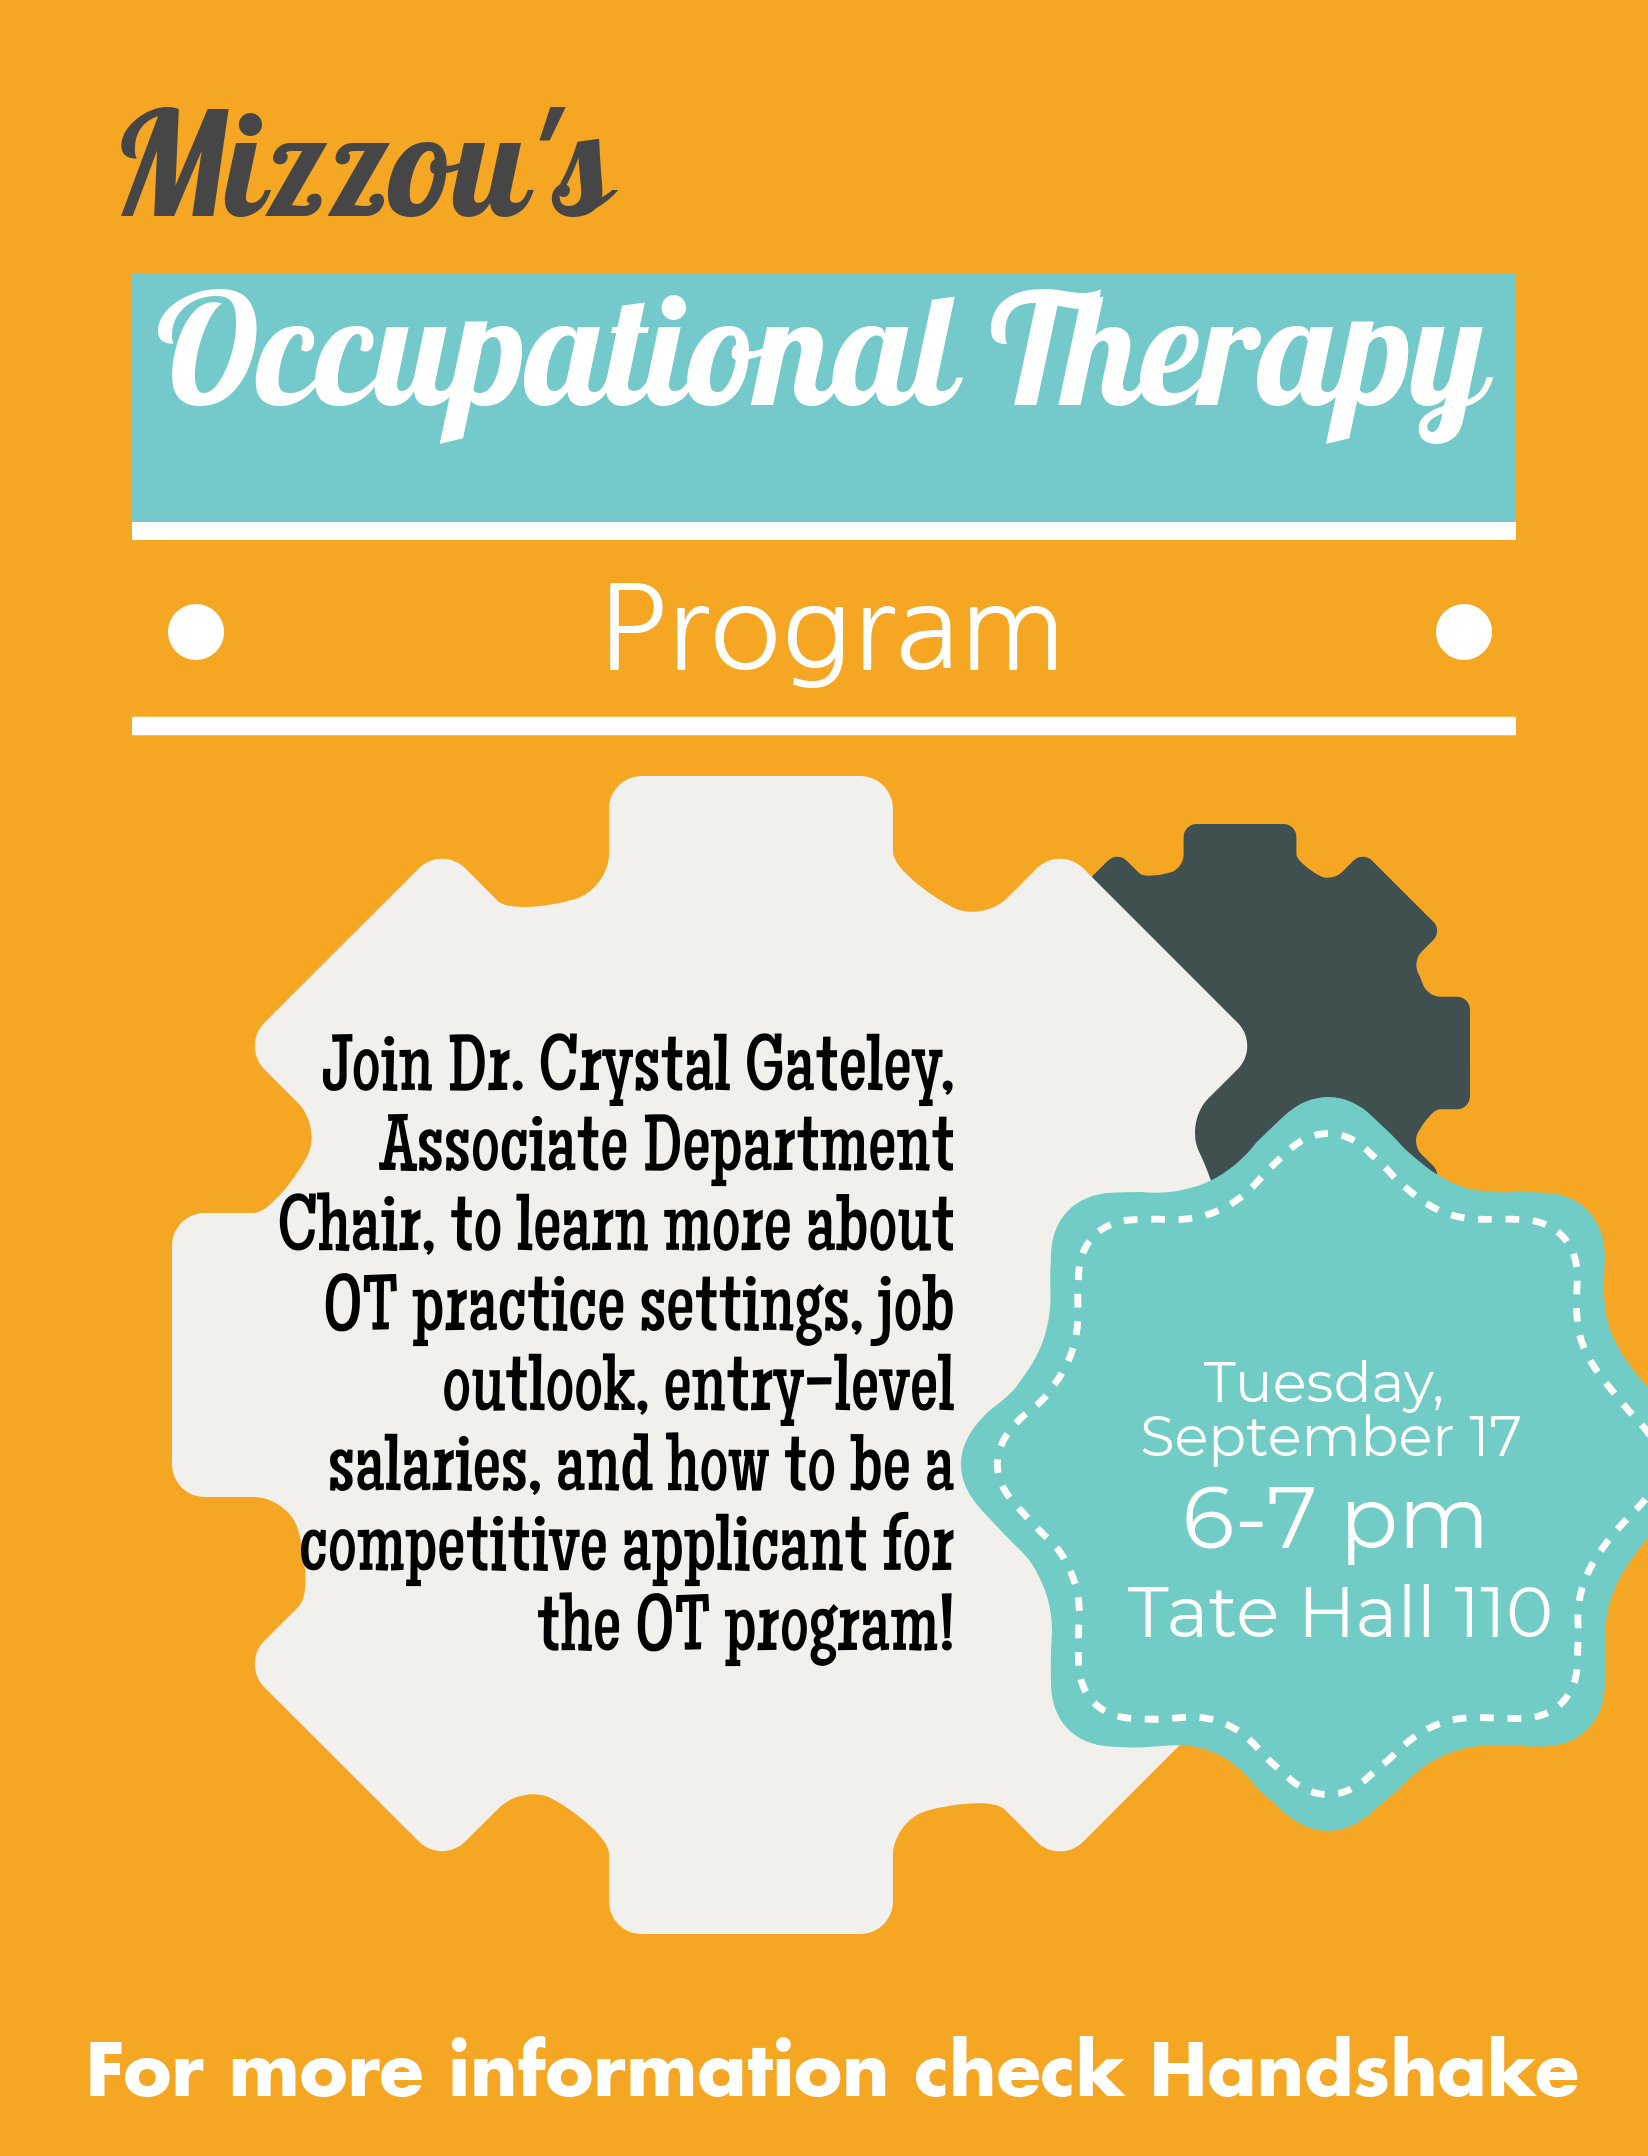 Occupational Therapy Info Session September 17, 2019 from 6-7pm in Tate Hall 110.